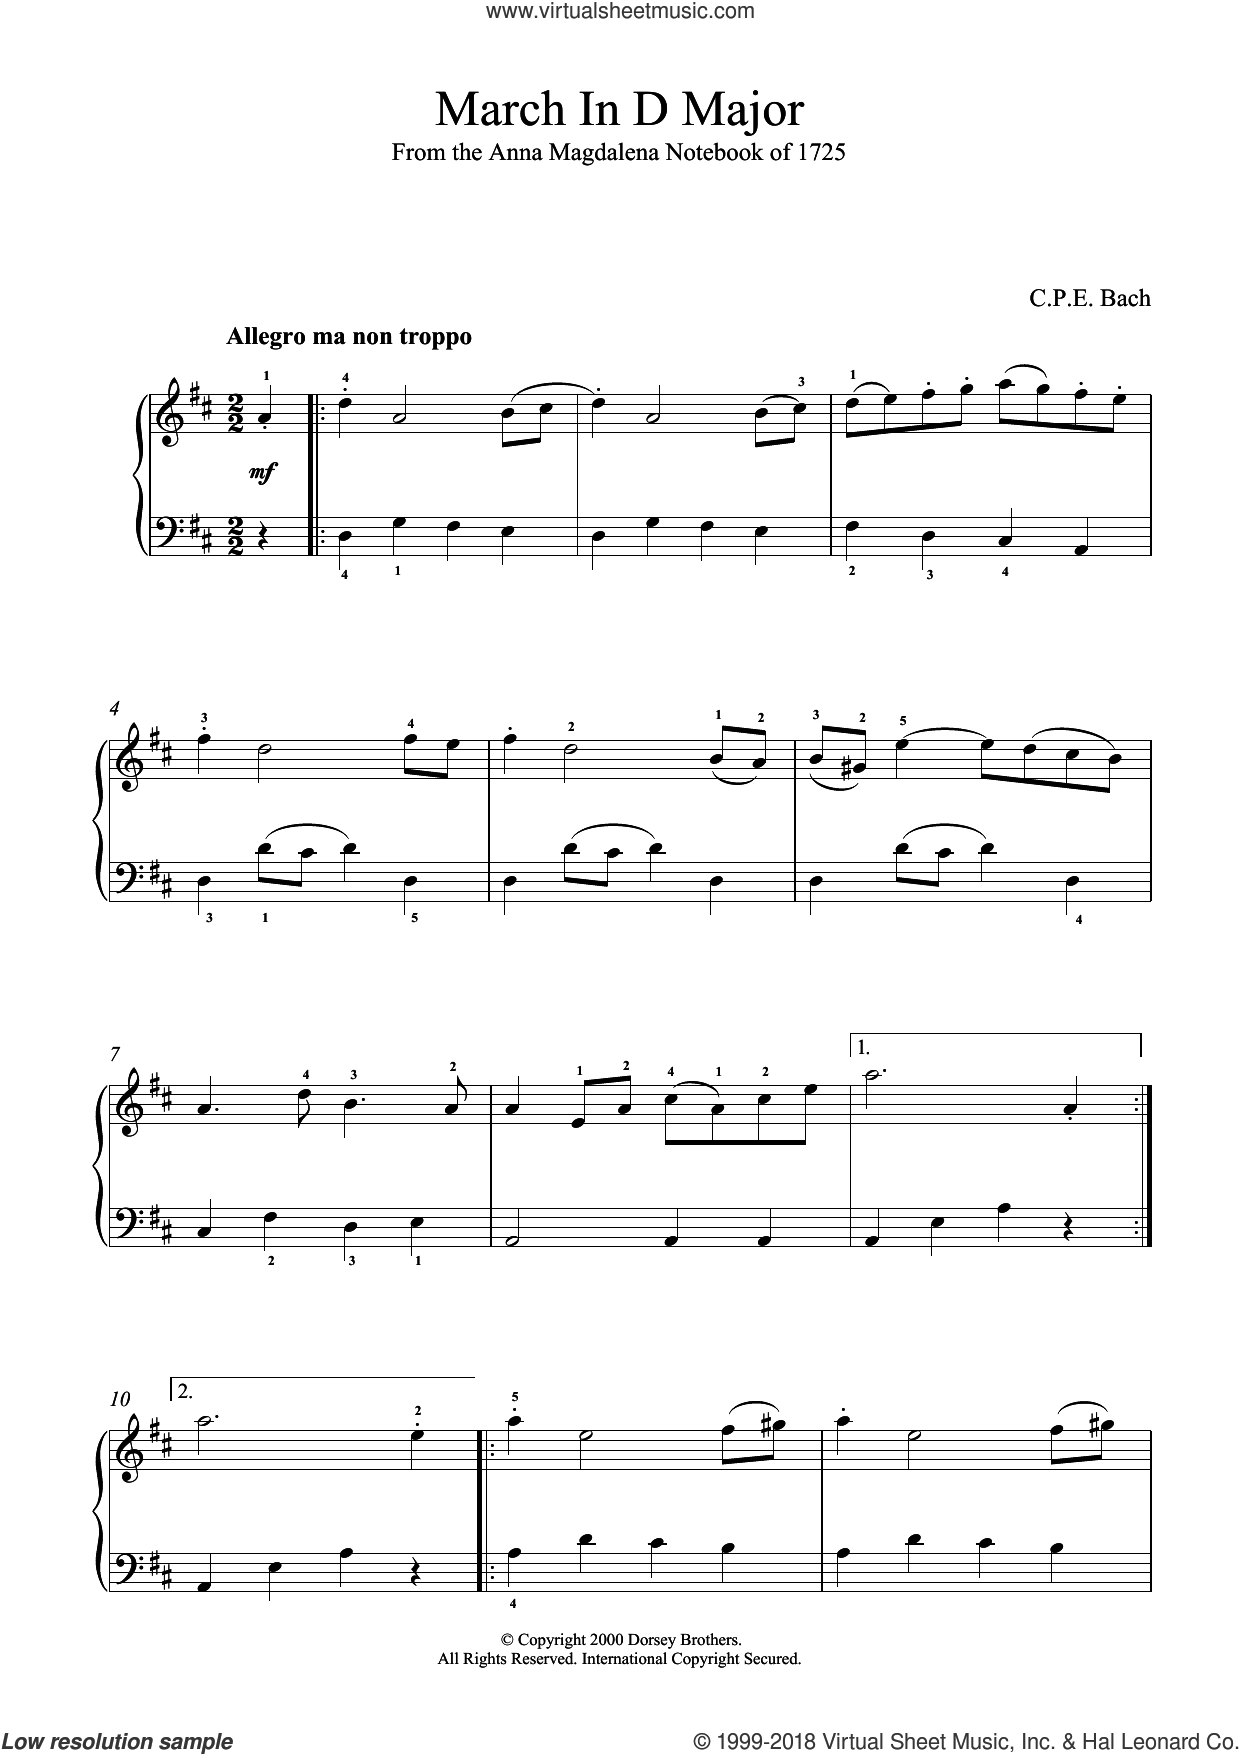 March In D Major, BWV App. 122 sheet music for piano solo by Johann Sebastian Bach and Carl Philip Emanuel Bach, classical score, intermediate